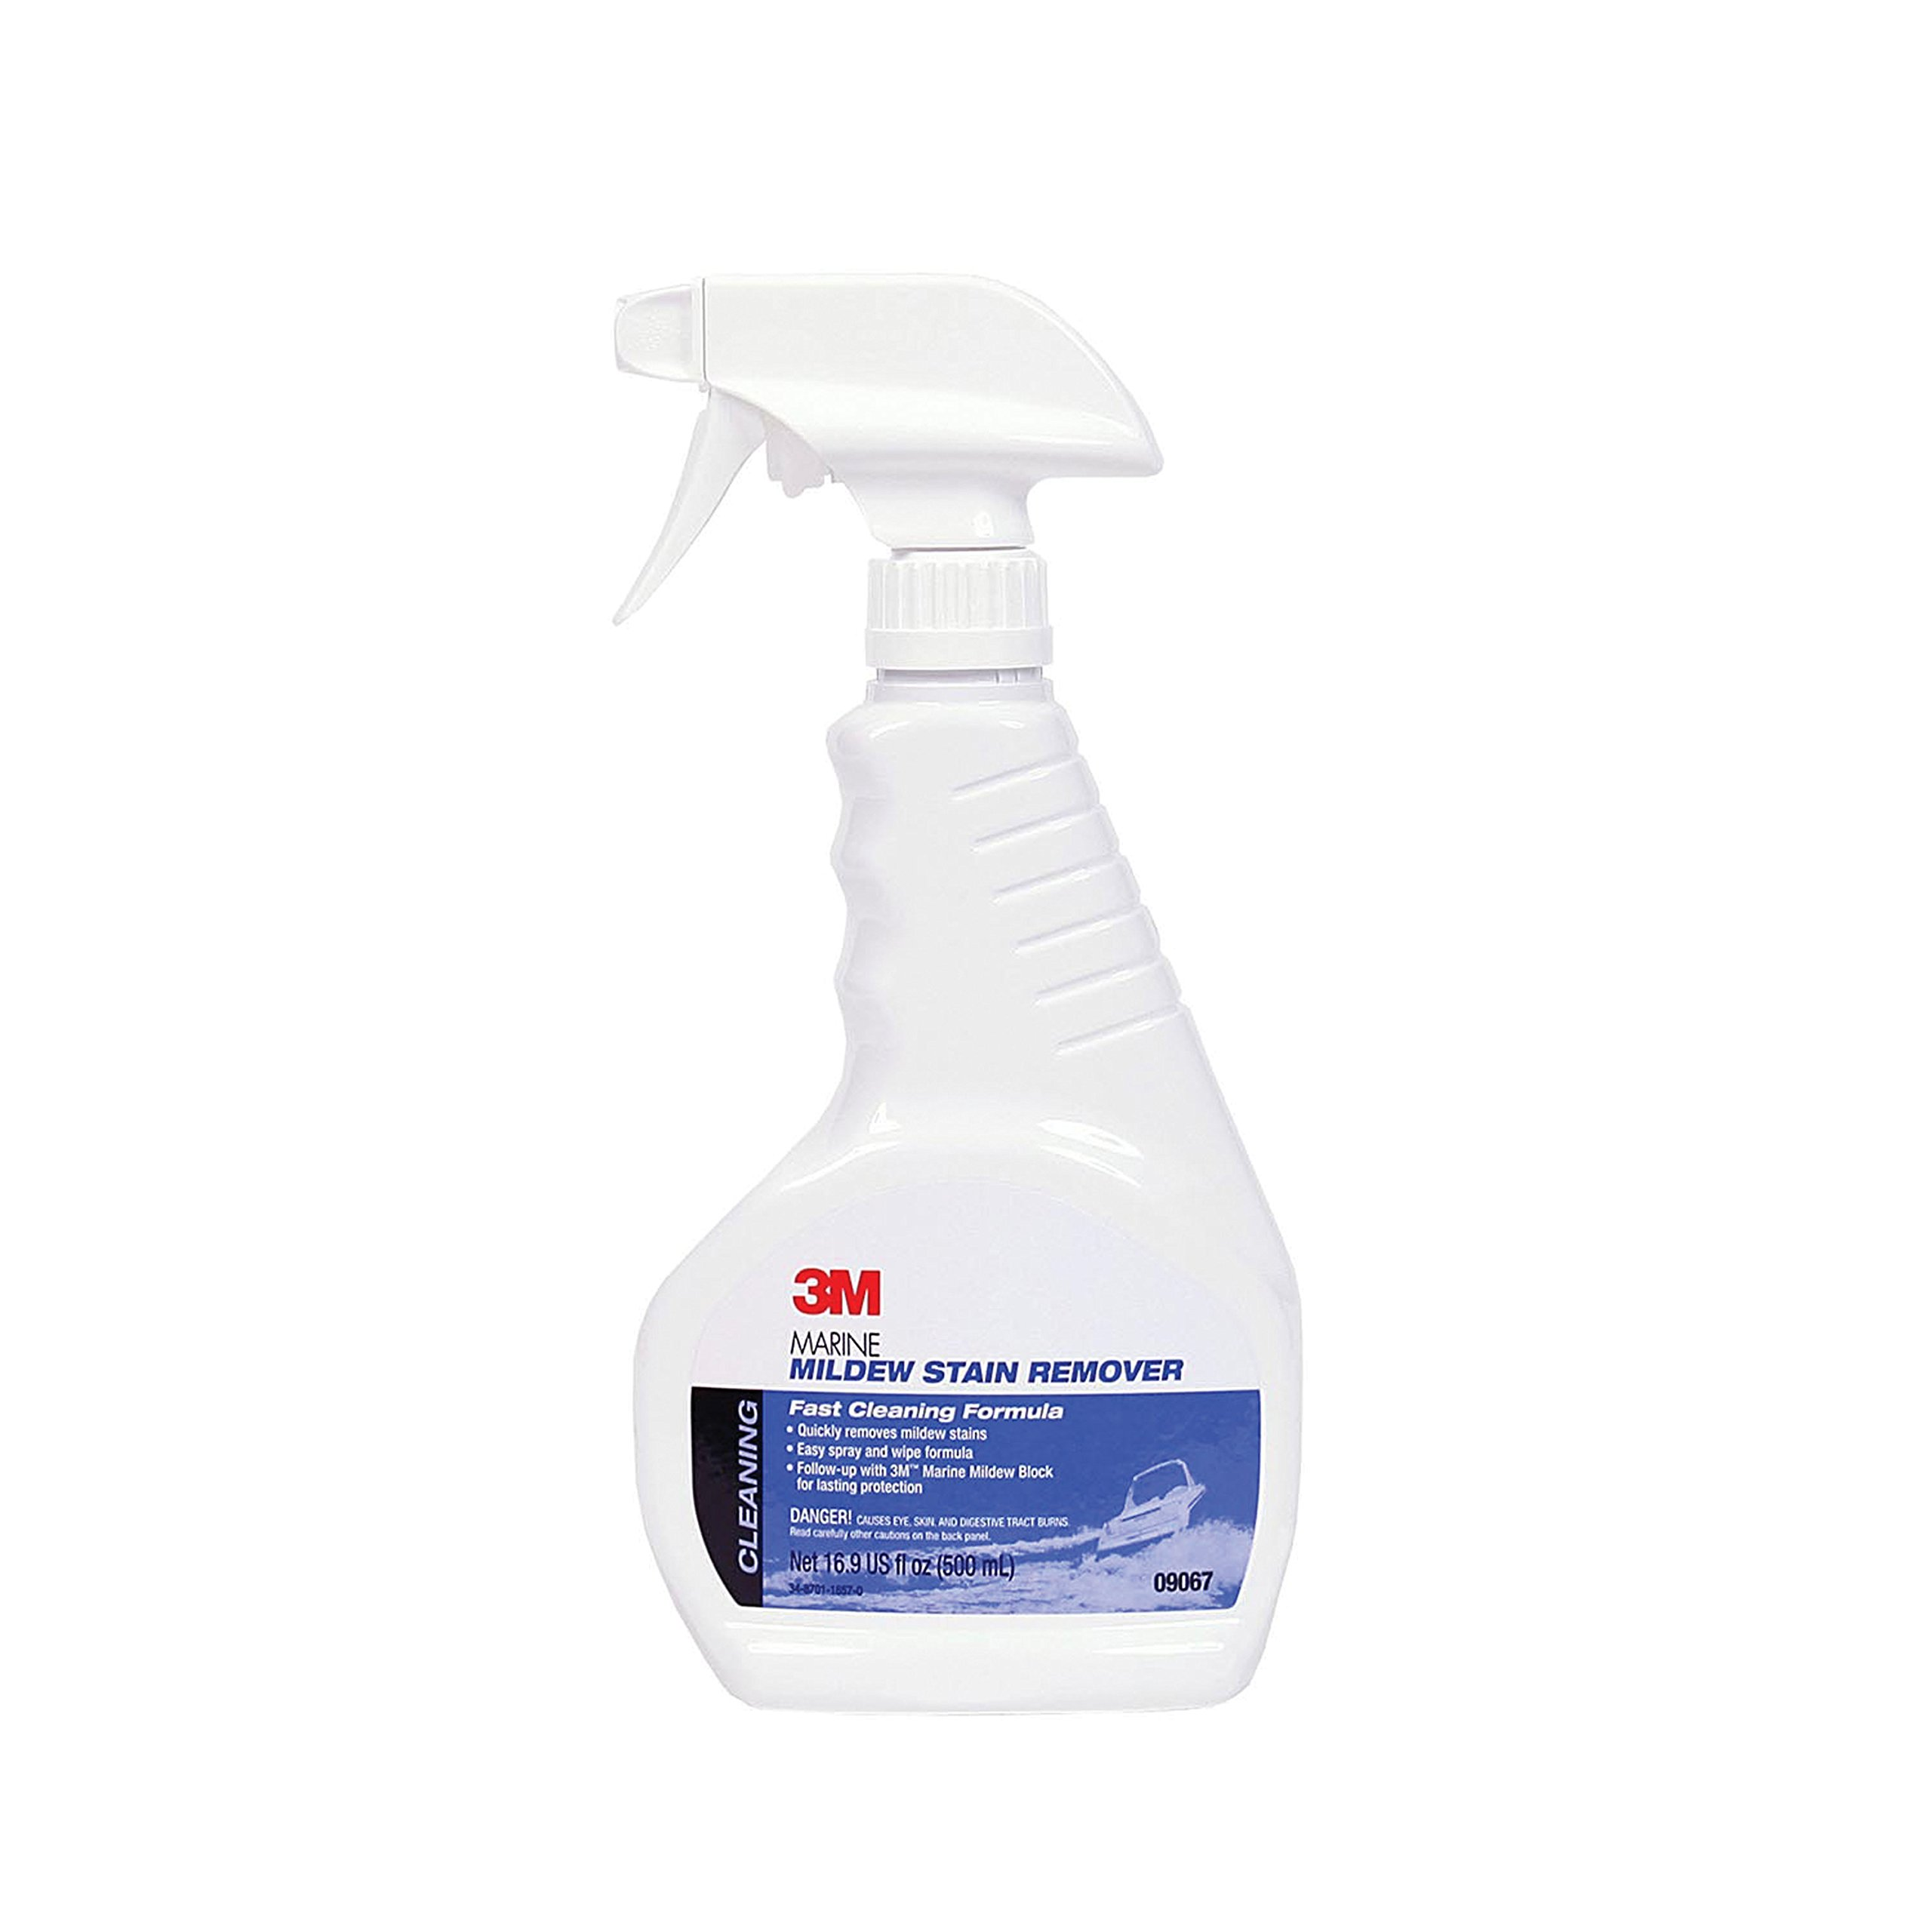 3M 09067 Mildew Stain Remover by 3M (Image #1)